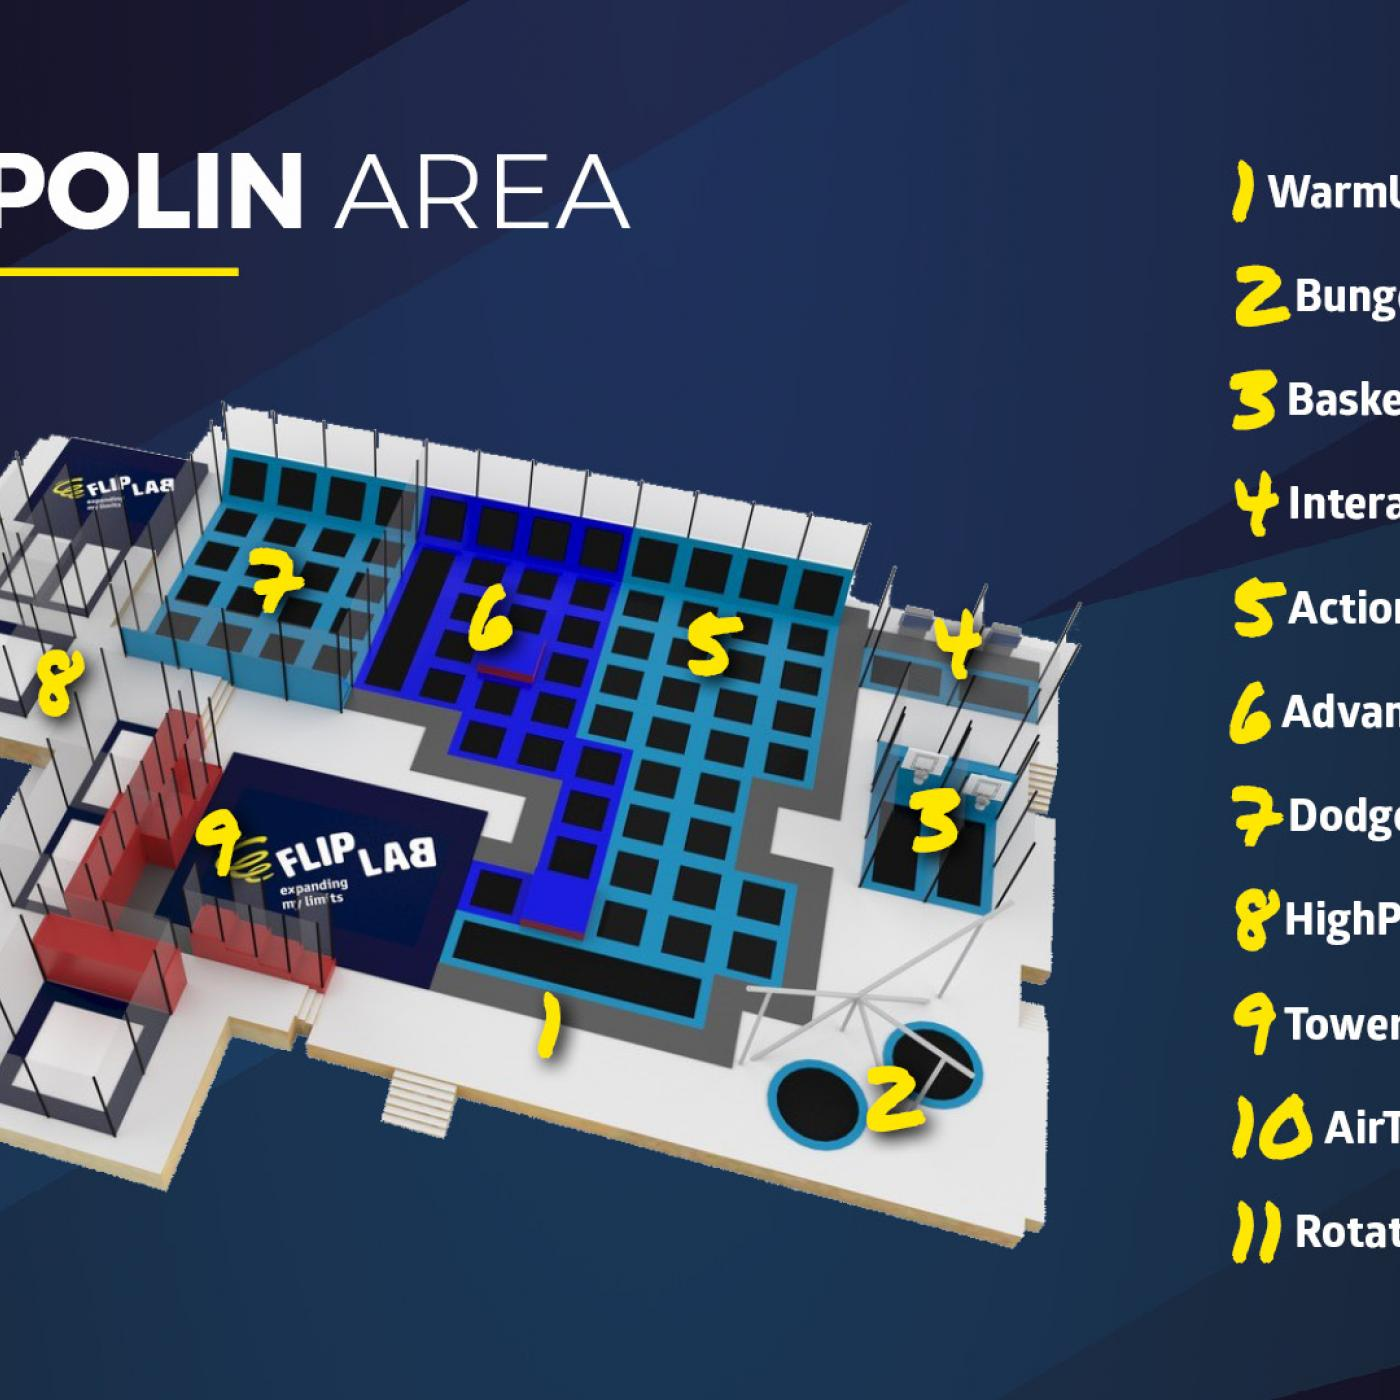 Plan Trampolin Area im Flip Lab Center in Graz.